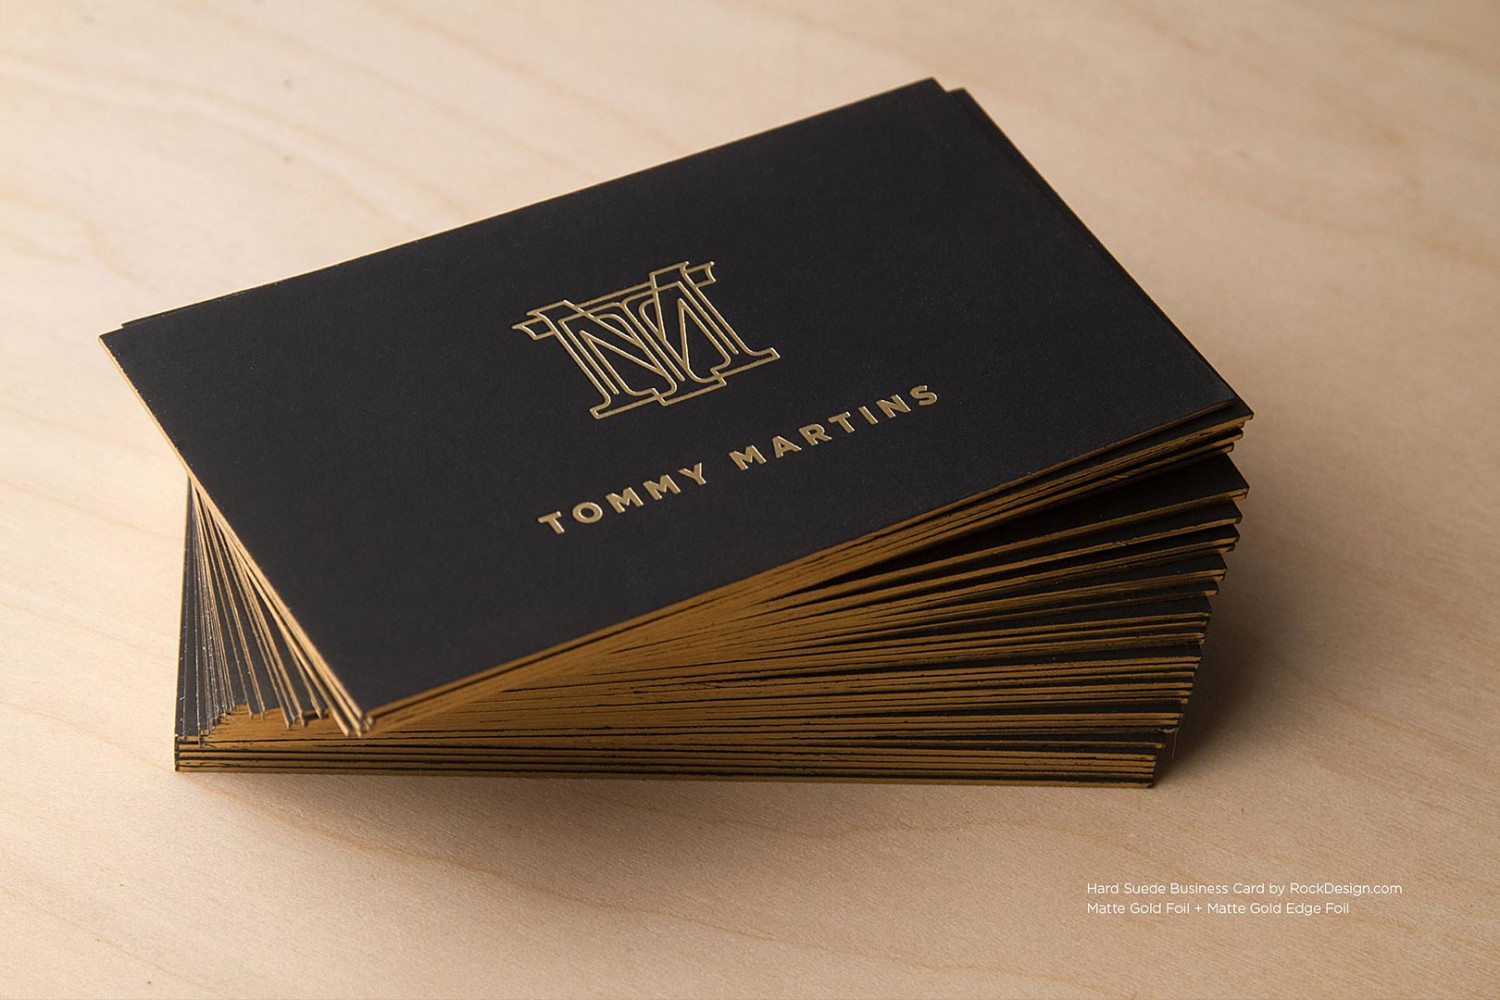 foil print business cards - Foil Print Business Cards